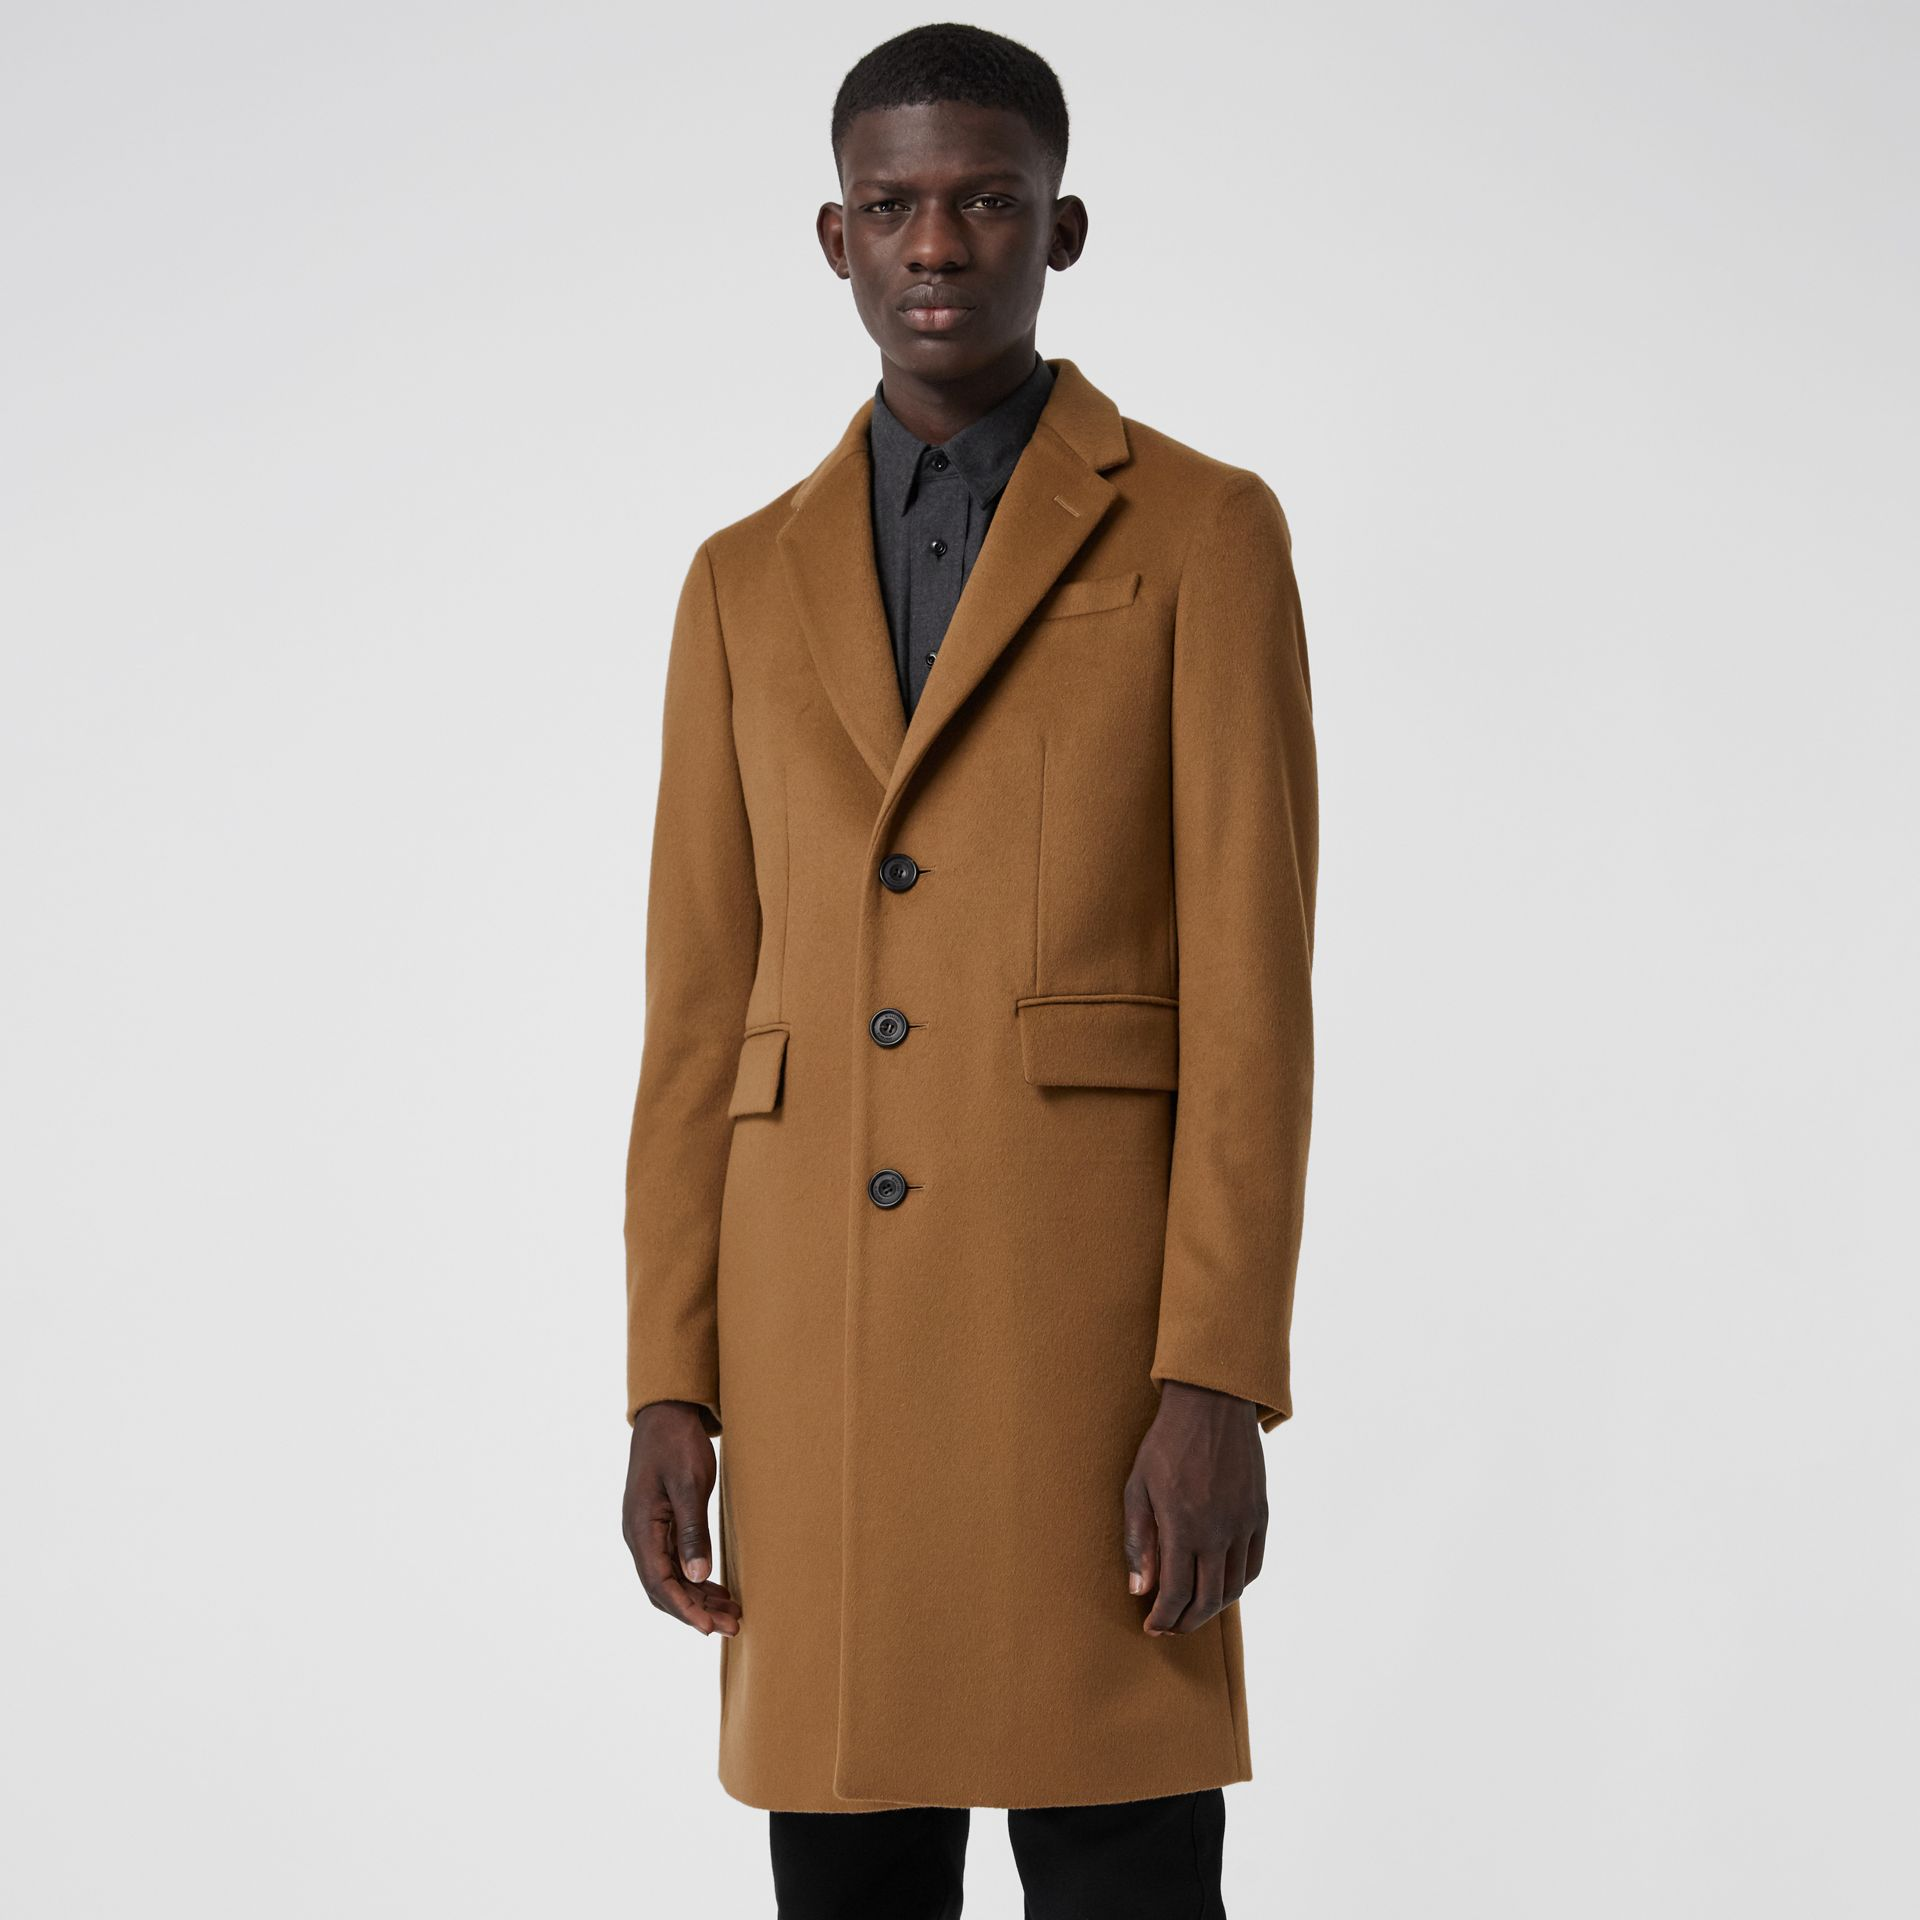 Wool Cashmere Tailored Coat in Dark Camel - Men | Burberry Australia - gallery image 5